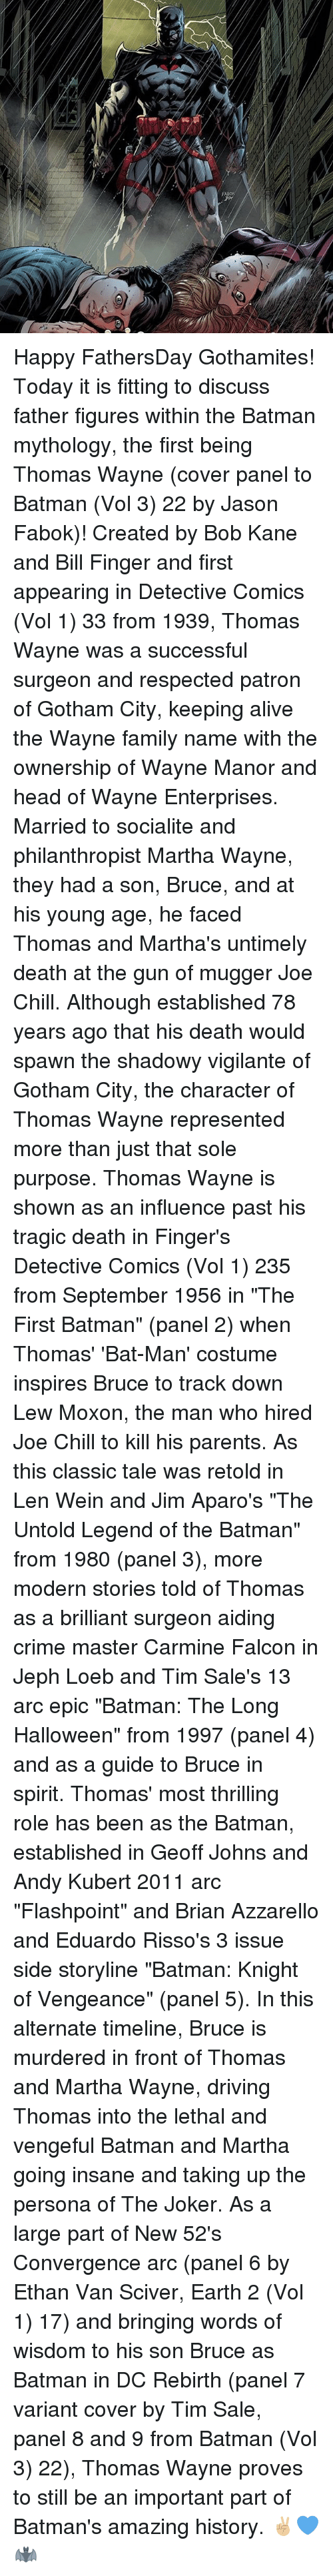 """Alive, Batman, and Chill: w,p Happy FathersDay Gothamites! Today it is fitting to discuss father figures within the Batman mythology, the first being Thomas Wayne (cover panel to Batman (Vol 3) 22 by Jason Fabok)! Created by Bob Kane and Bill Finger and first appearing in Detective Comics (Vol 1) 33 from 1939, Thomas Wayne was a successful surgeon and respected patron of Gotham City, keeping alive the Wayne family name with the ownership of Wayne Manor and head of Wayne Enterprises. Married to socialite and philanthropist Martha Wayne, they had a son, Bruce, and at his young age, he faced Thomas and Martha's untimely death at the gun of mugger Joe Chill. Although established 78 years ago that his death would spawn the shadowy vigilante of Gotham City, the character of Thomas Wayne represented more than just that sole purpose. Thomas Wayne is shown as an influence past his tragic death in Finger's Detective Comics (Vol 1) 235 from September 1956 in """"The First Batman"""" (panel 2) when Thomas' 'Bat-Man' costume inspires Bruce to track down Lew Moxon, the man who hired Joe Chill to kill his parents. As this classic tale was retold in Len Wein and Jim Aparo's """"The Untold Legend of the Batman"""" from 1980 (panel 3), more modern stories told of Thomas as a brilliant surgeon aiding crime master Carmine Falcon in Jeph Loeb and Tim Sale's 13 arc epic """"Batman: The Long Halloween"""" from 1997 (panel 4) and as a guide to Bruce in spirit. Thomas' most thrilling role has been as the Batman, established in Geoff Johns and Andy Kubert 2011 arc """"Flashpoint"""" and Brian Azzarello and Eduardo Risso's 3 issue side storyline """"Batman: Knight of Vengeance"""" (panel 5). In this alternate timeline, Bruce is murdered in front of Thomas and Martha Wayne, driving Thomas into the lethal and vengeful Batman and Martha going insane and taking up the persona of The Joker. As a large part of New 52's Convergence arc (panel 6 by Ethan Van Sciver, Earth 2 (Vol 1) 17) and bringing words of wisdom to his son Bruc"""